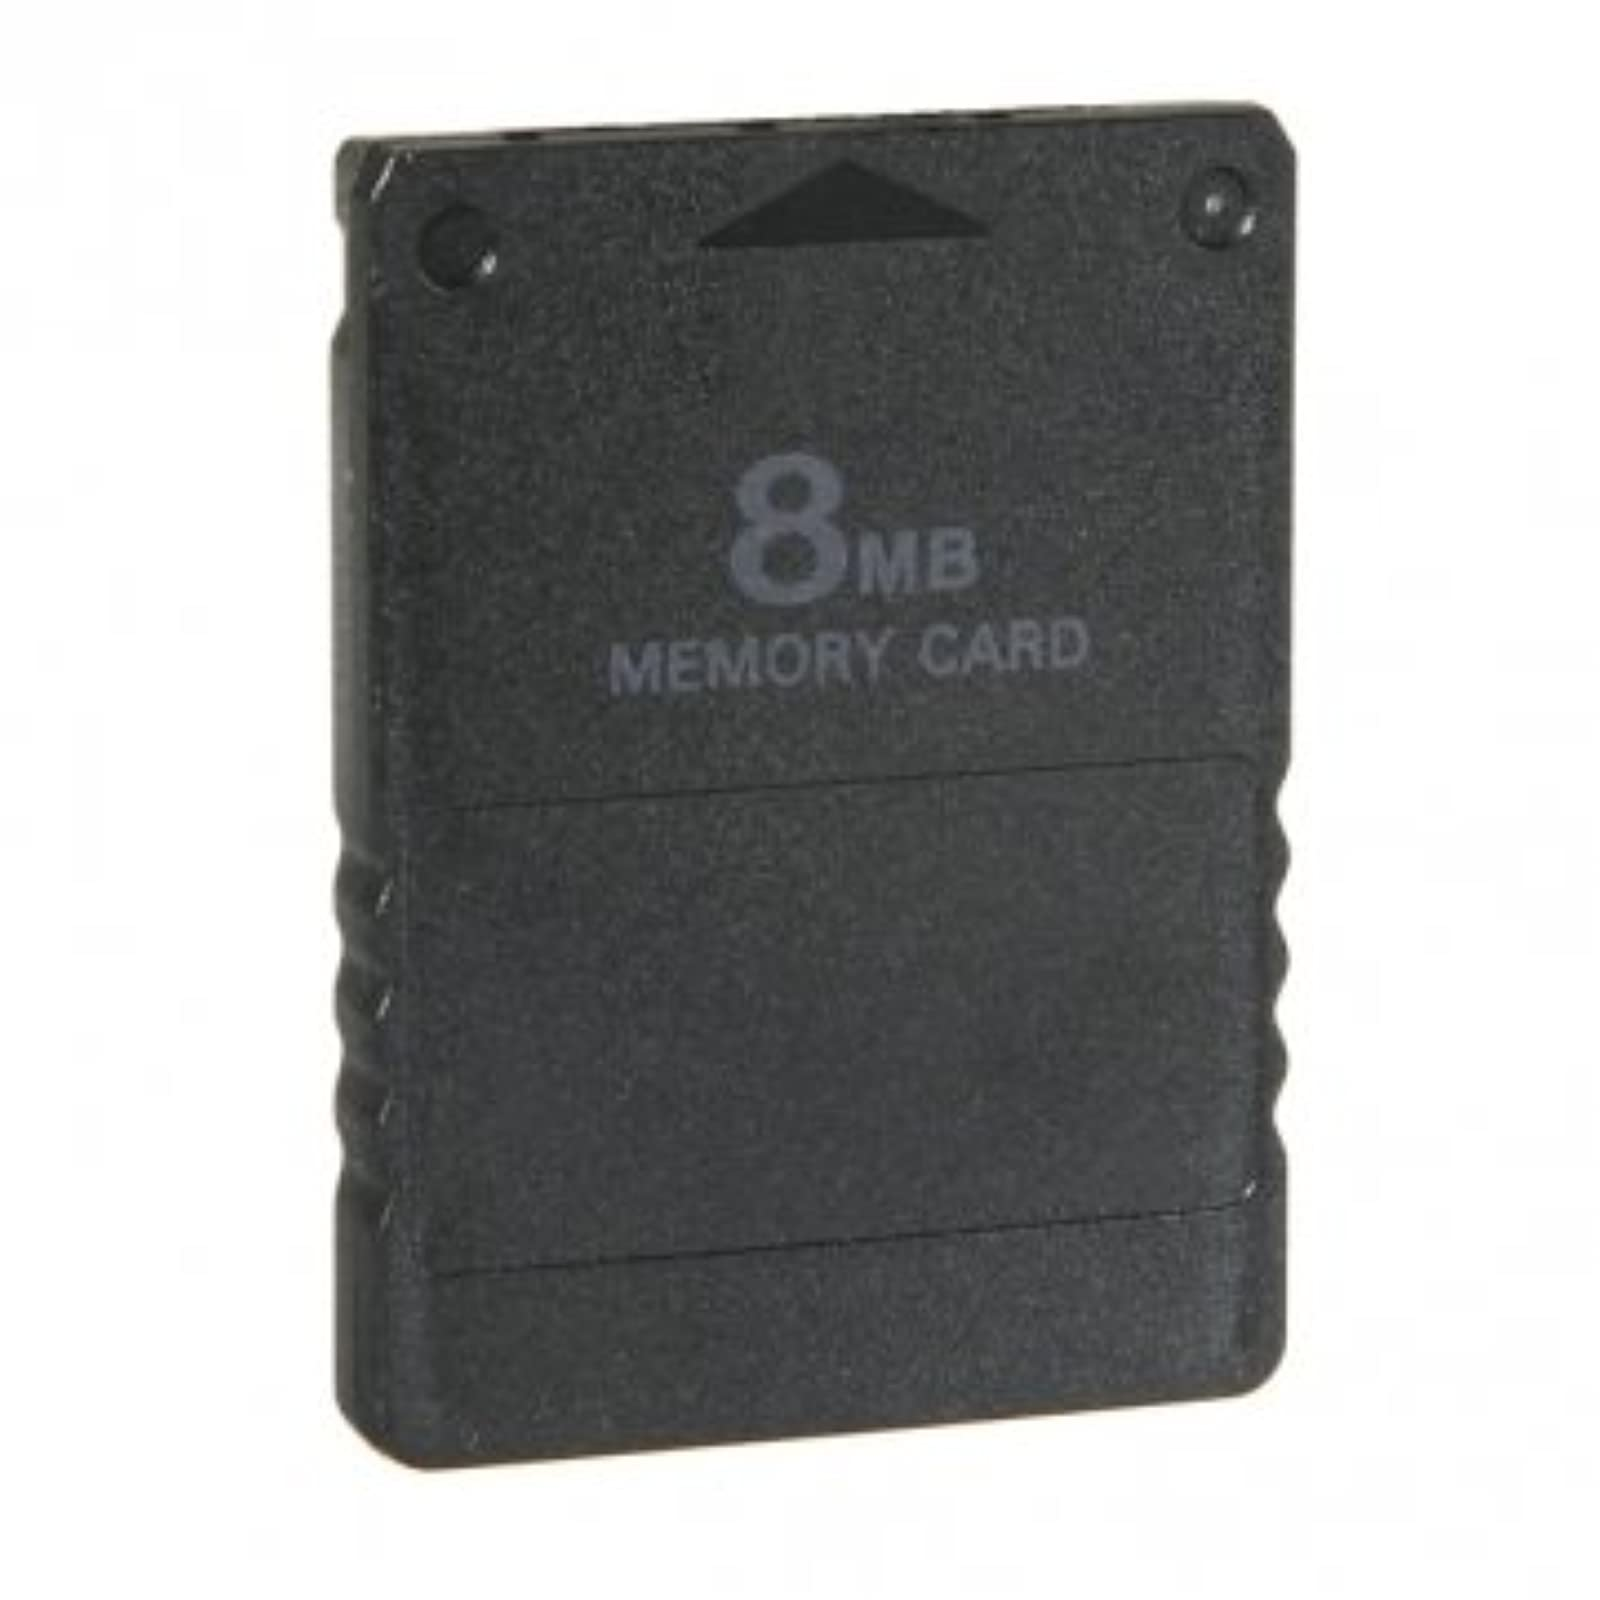 8 MB Memory Card For PlayStation 2 PS2 Black